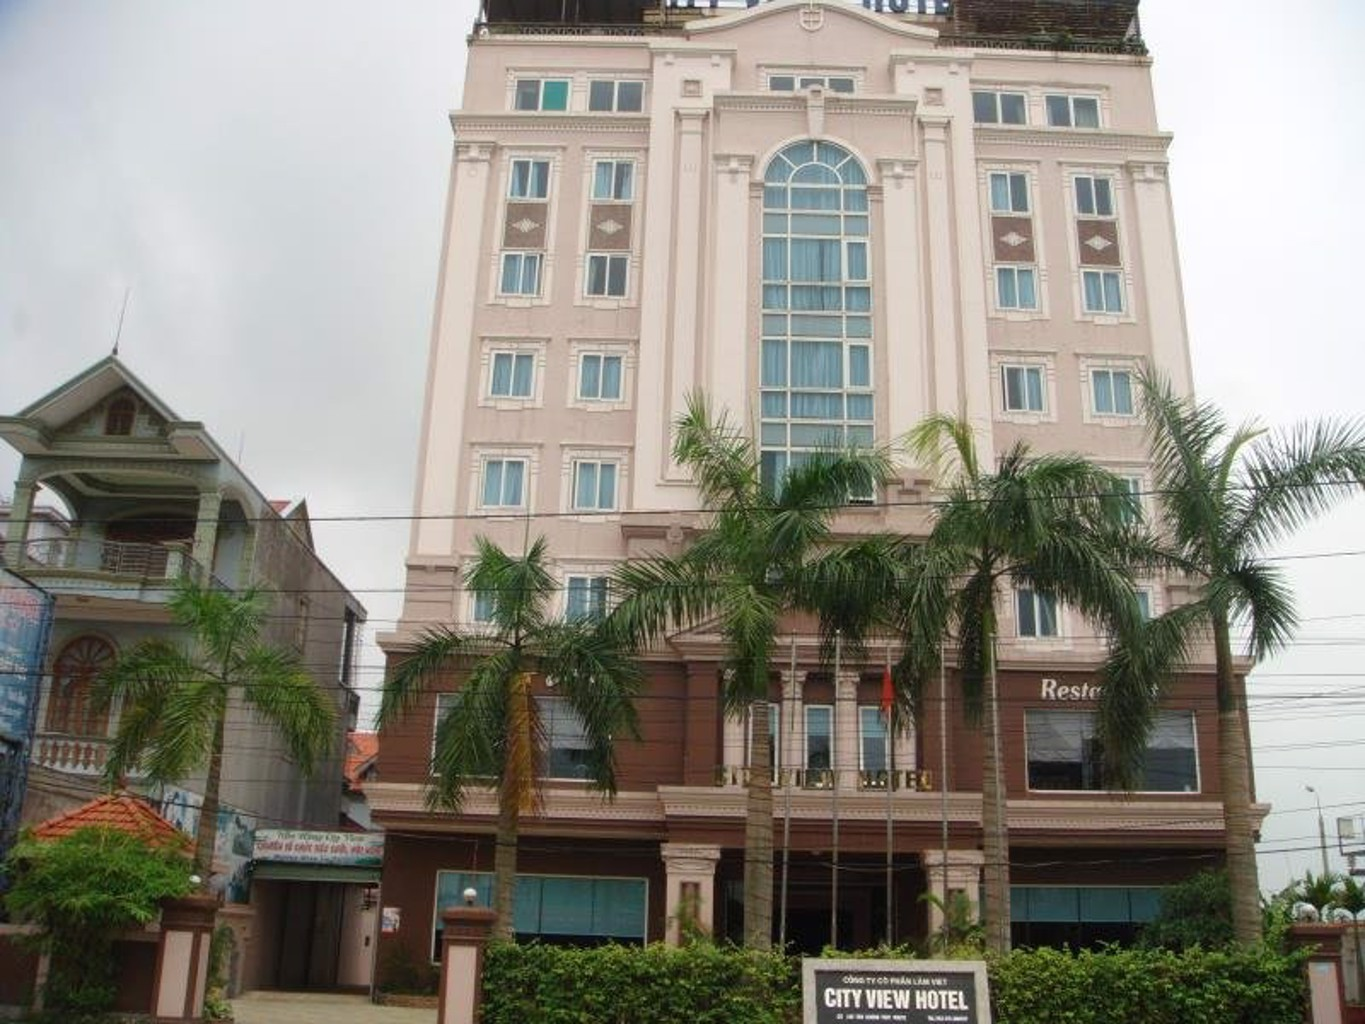 Gallery image of City View Hotel